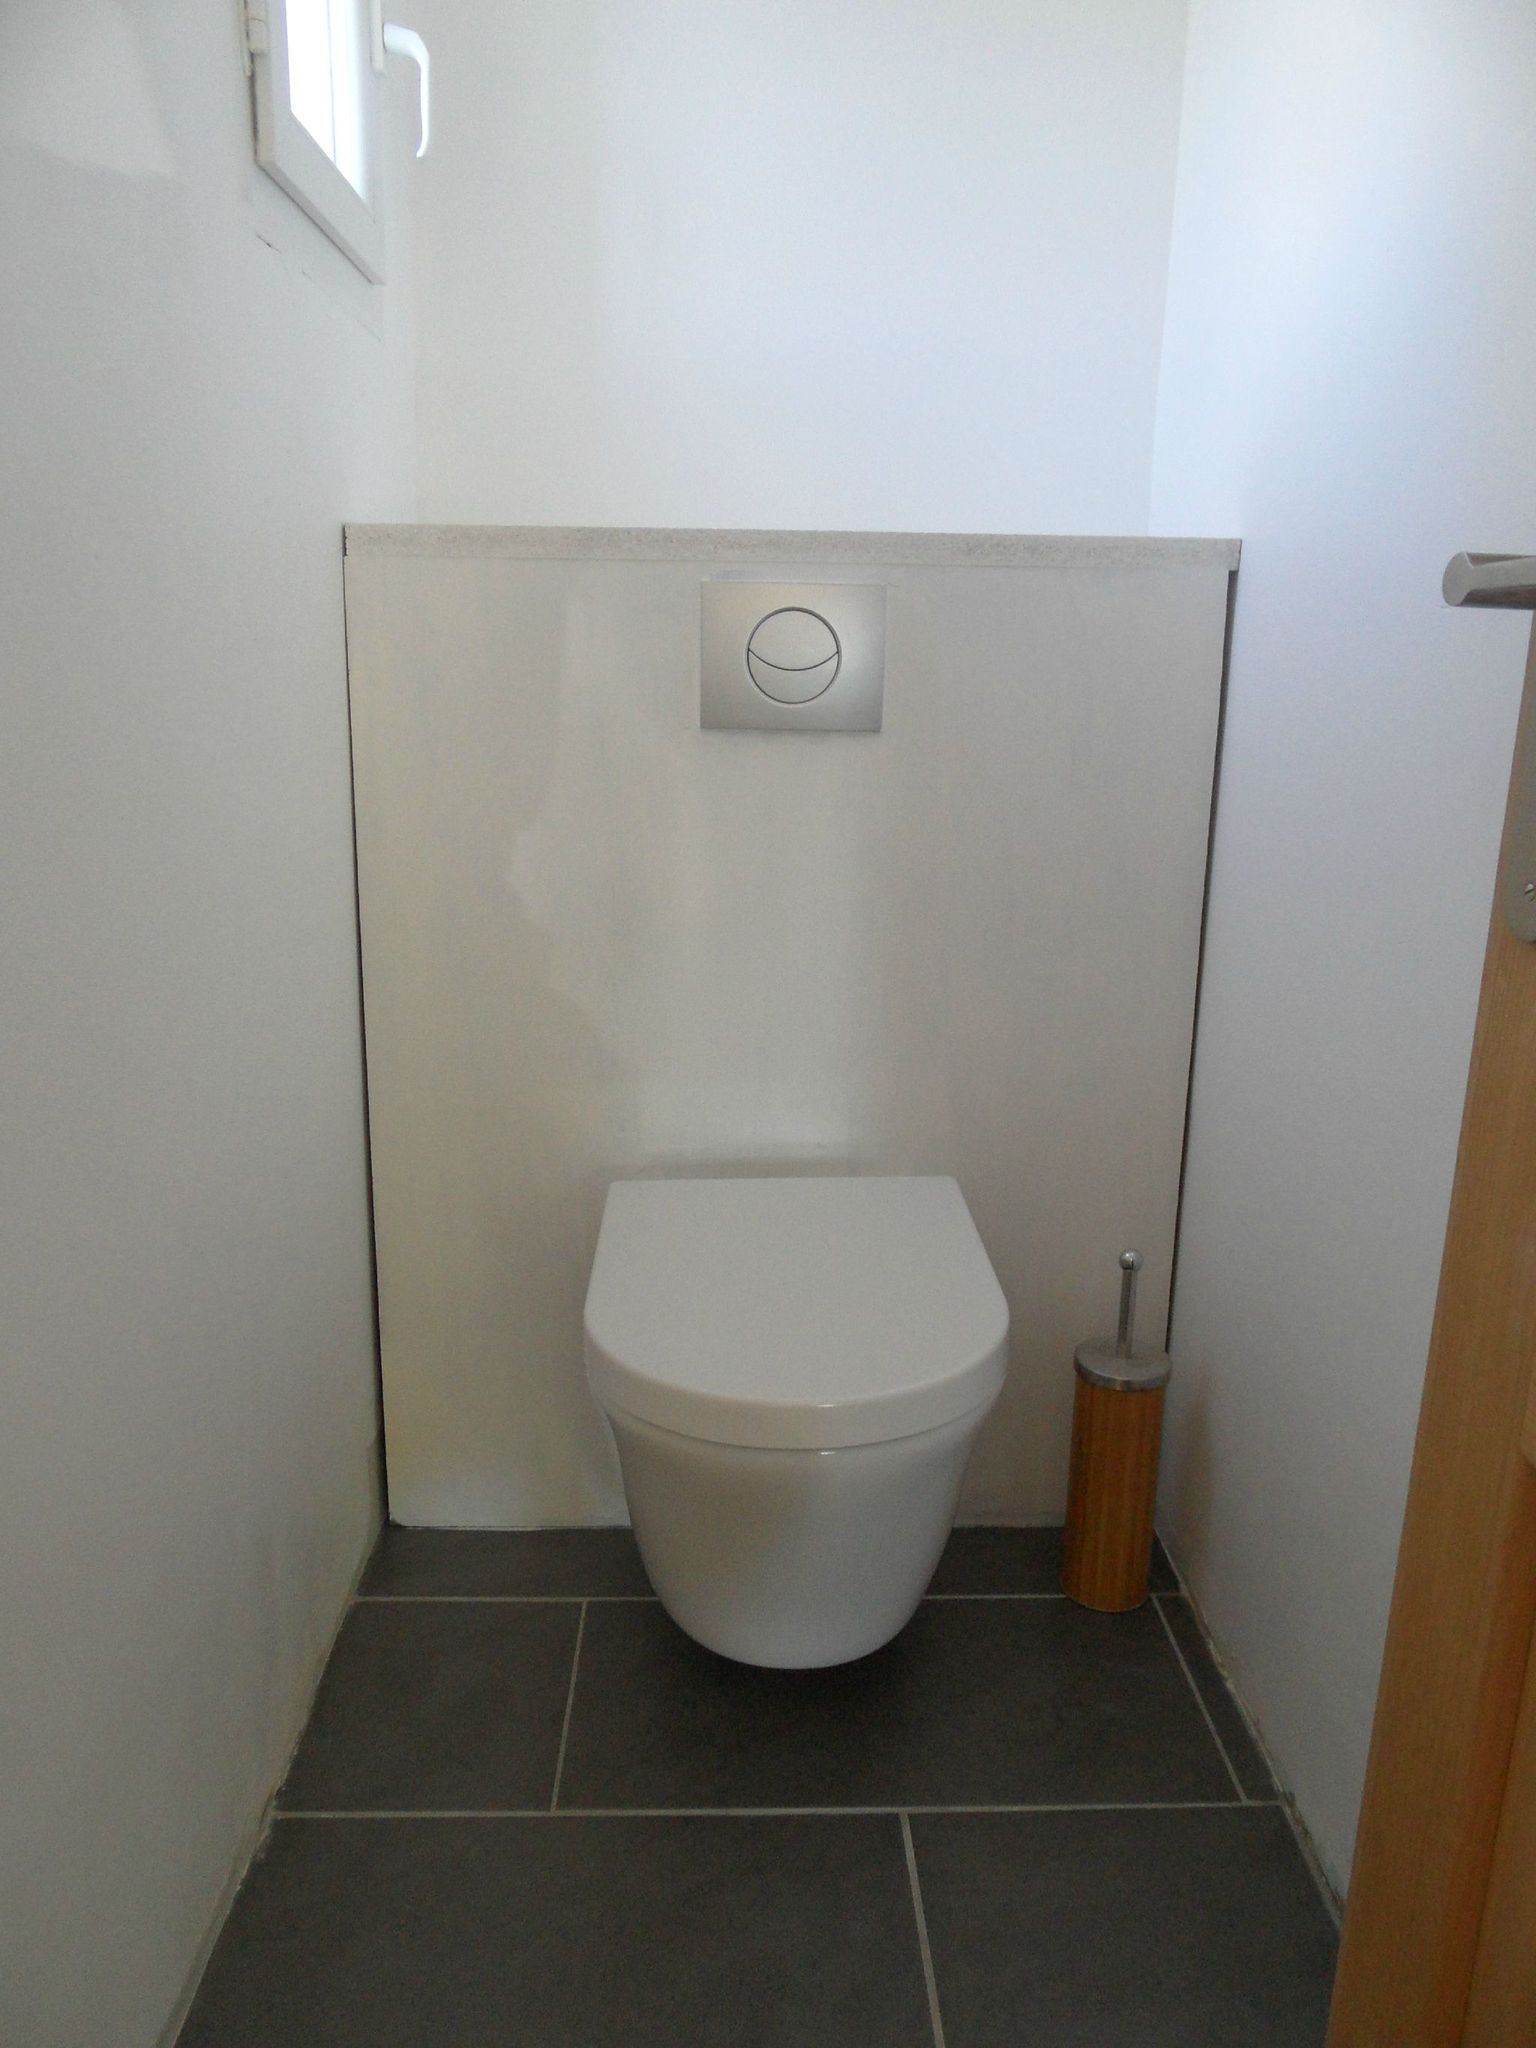 Am nagement wc for Amenagement wc petite surface